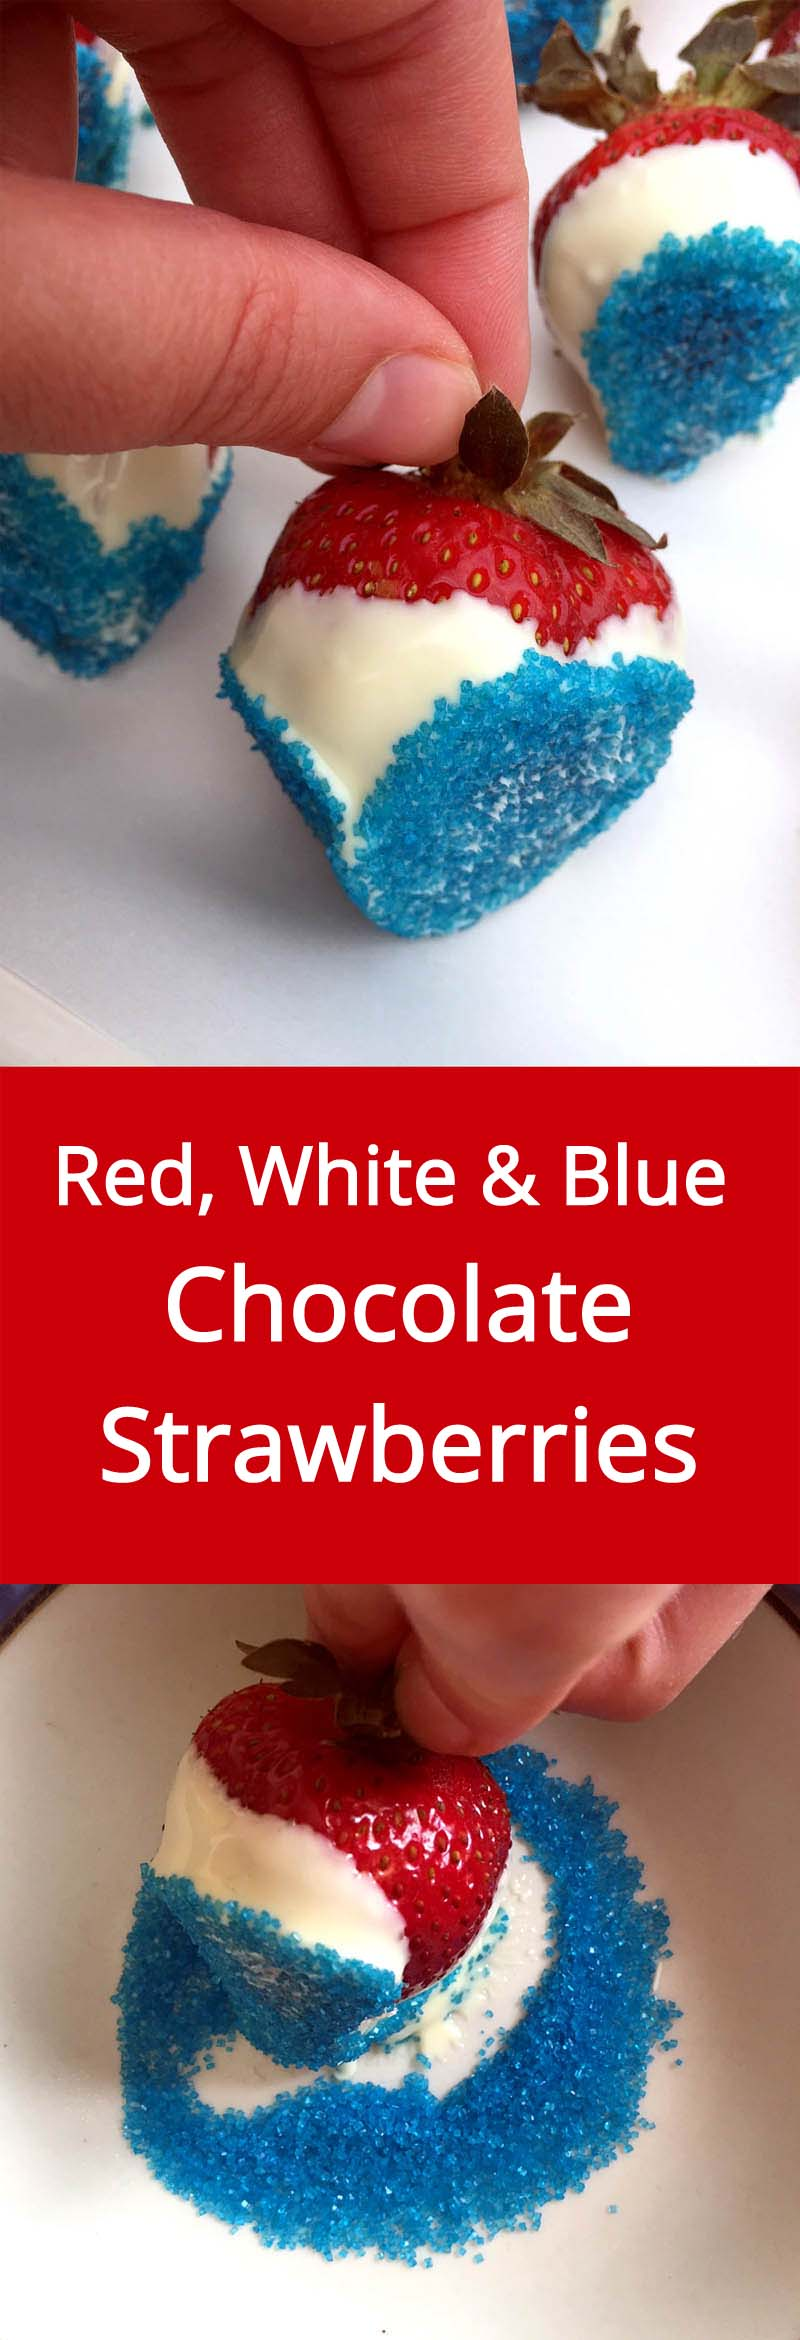 Red White and Blue Chocolate-Covered Strawberries - these make a perfect dessert for 4th of July or any other Patriotic holiday or party! | MelanieCooks.com